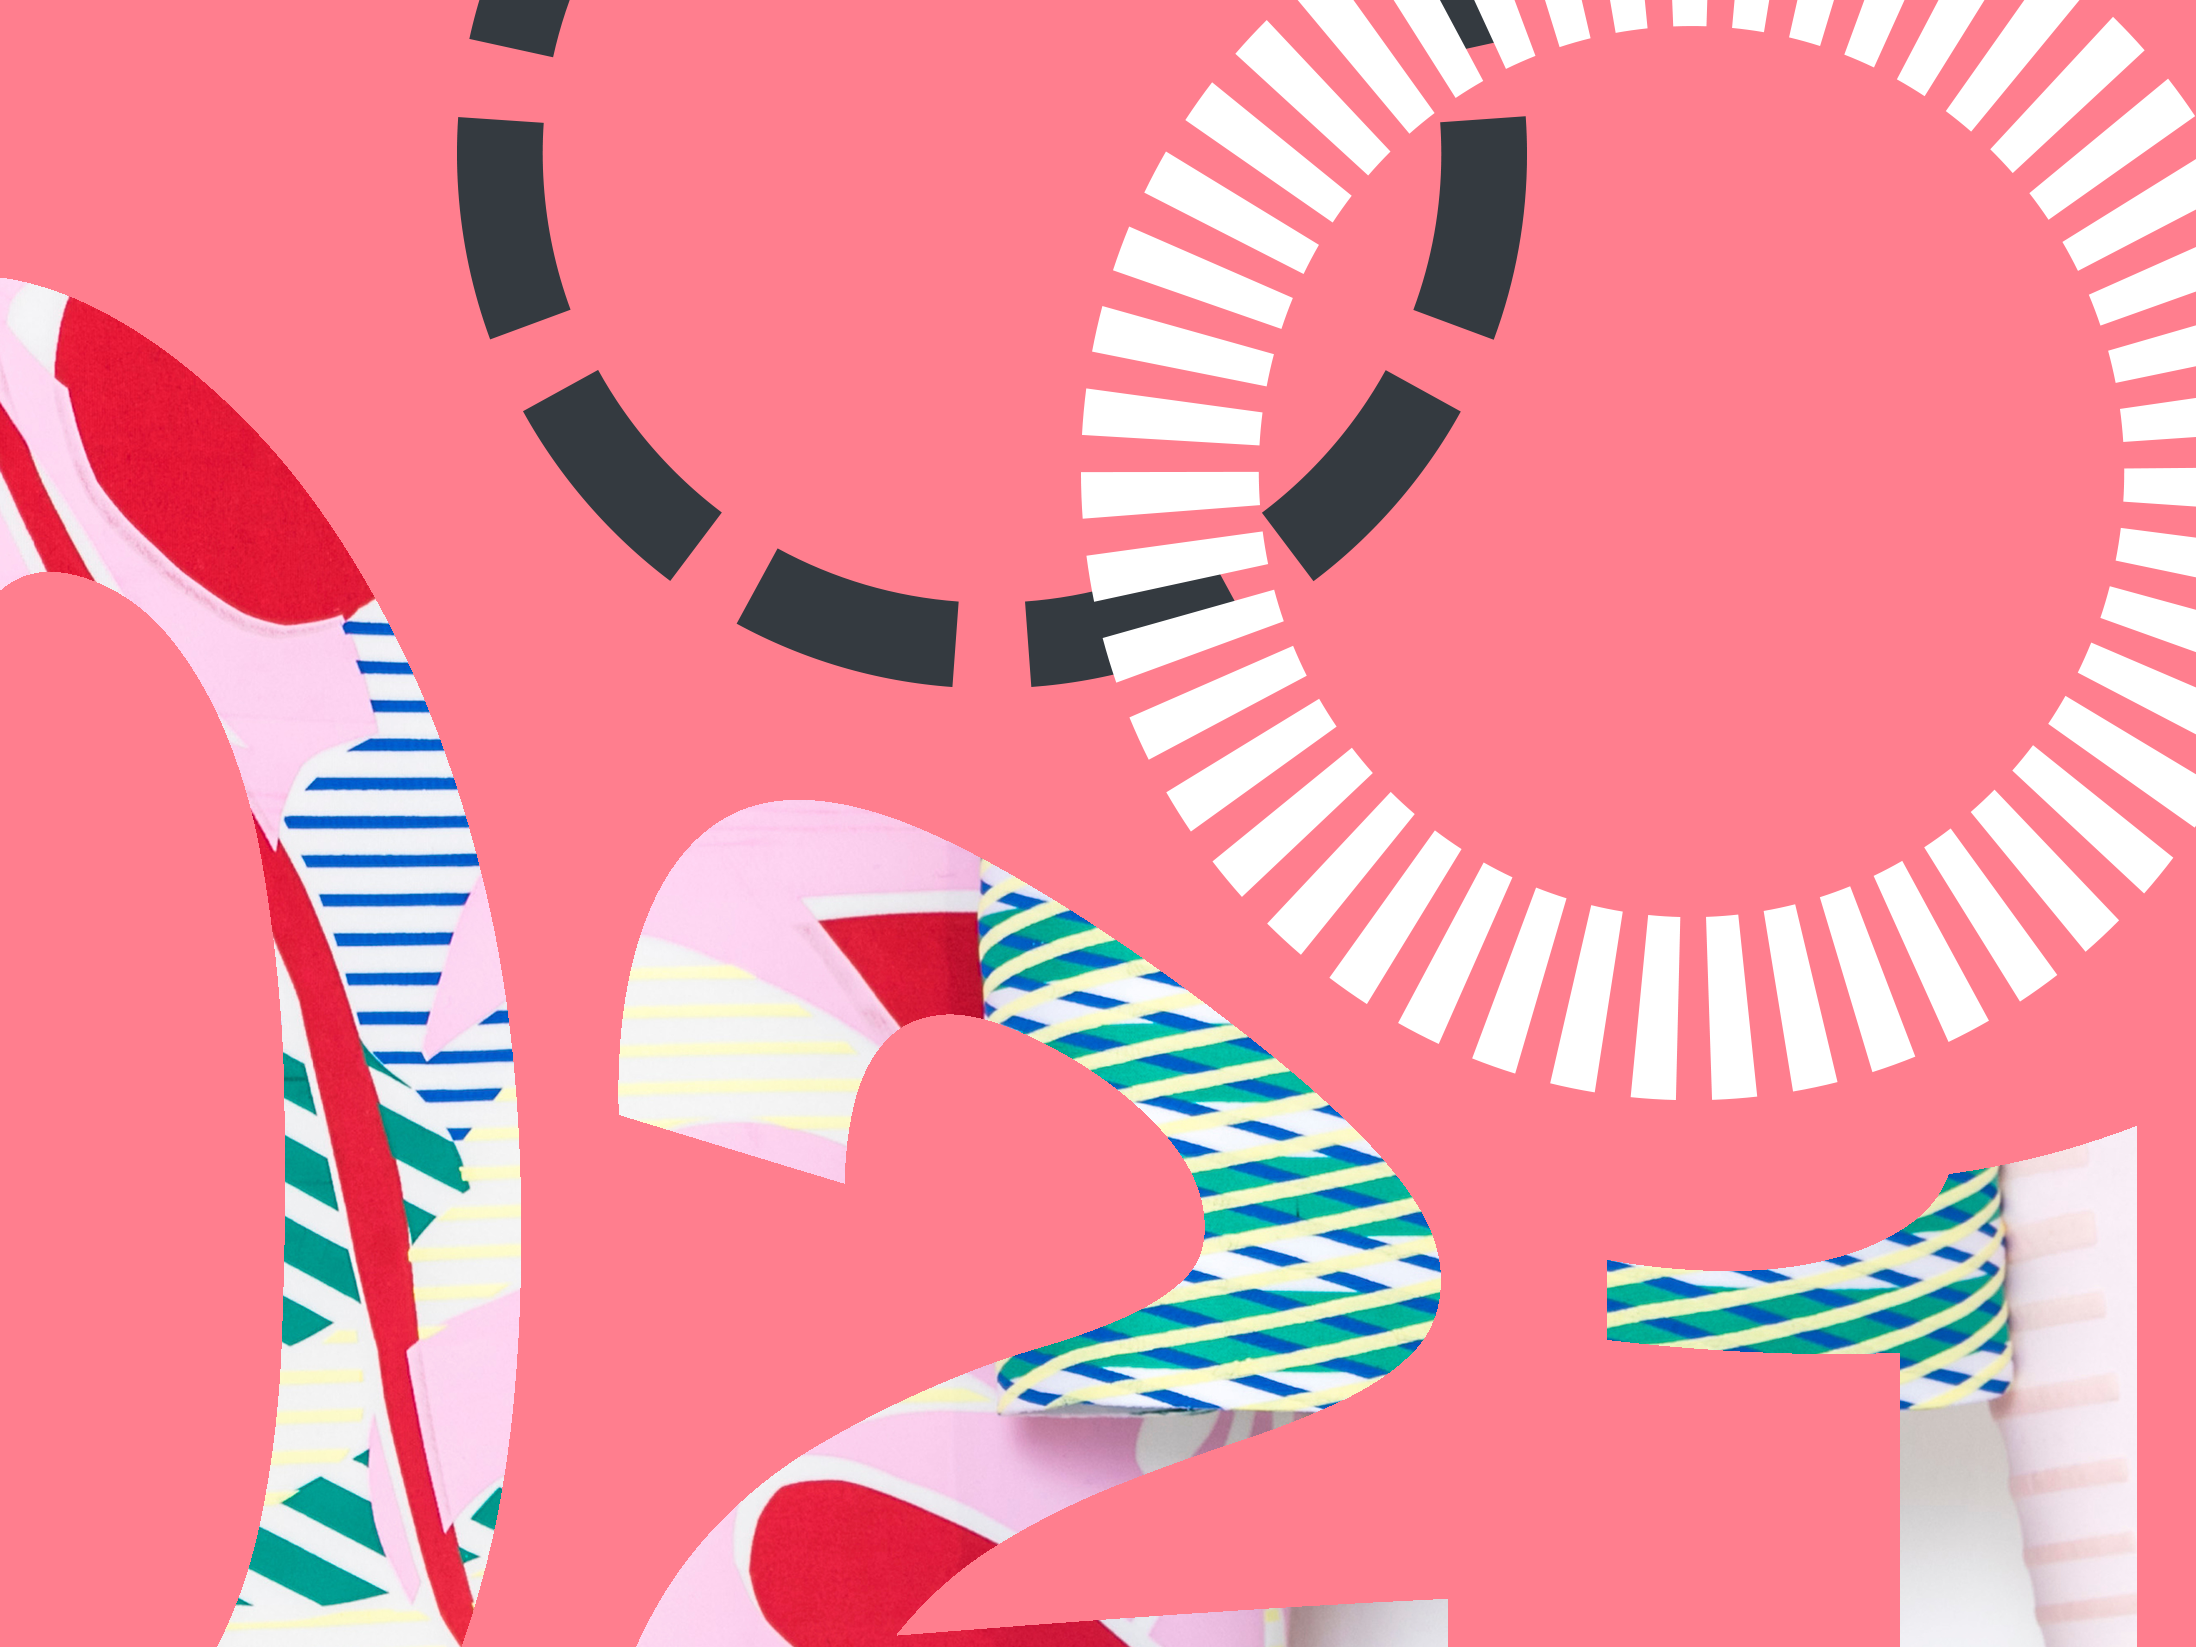 pale pink background with numbers 2021 in decorative red, green and white font